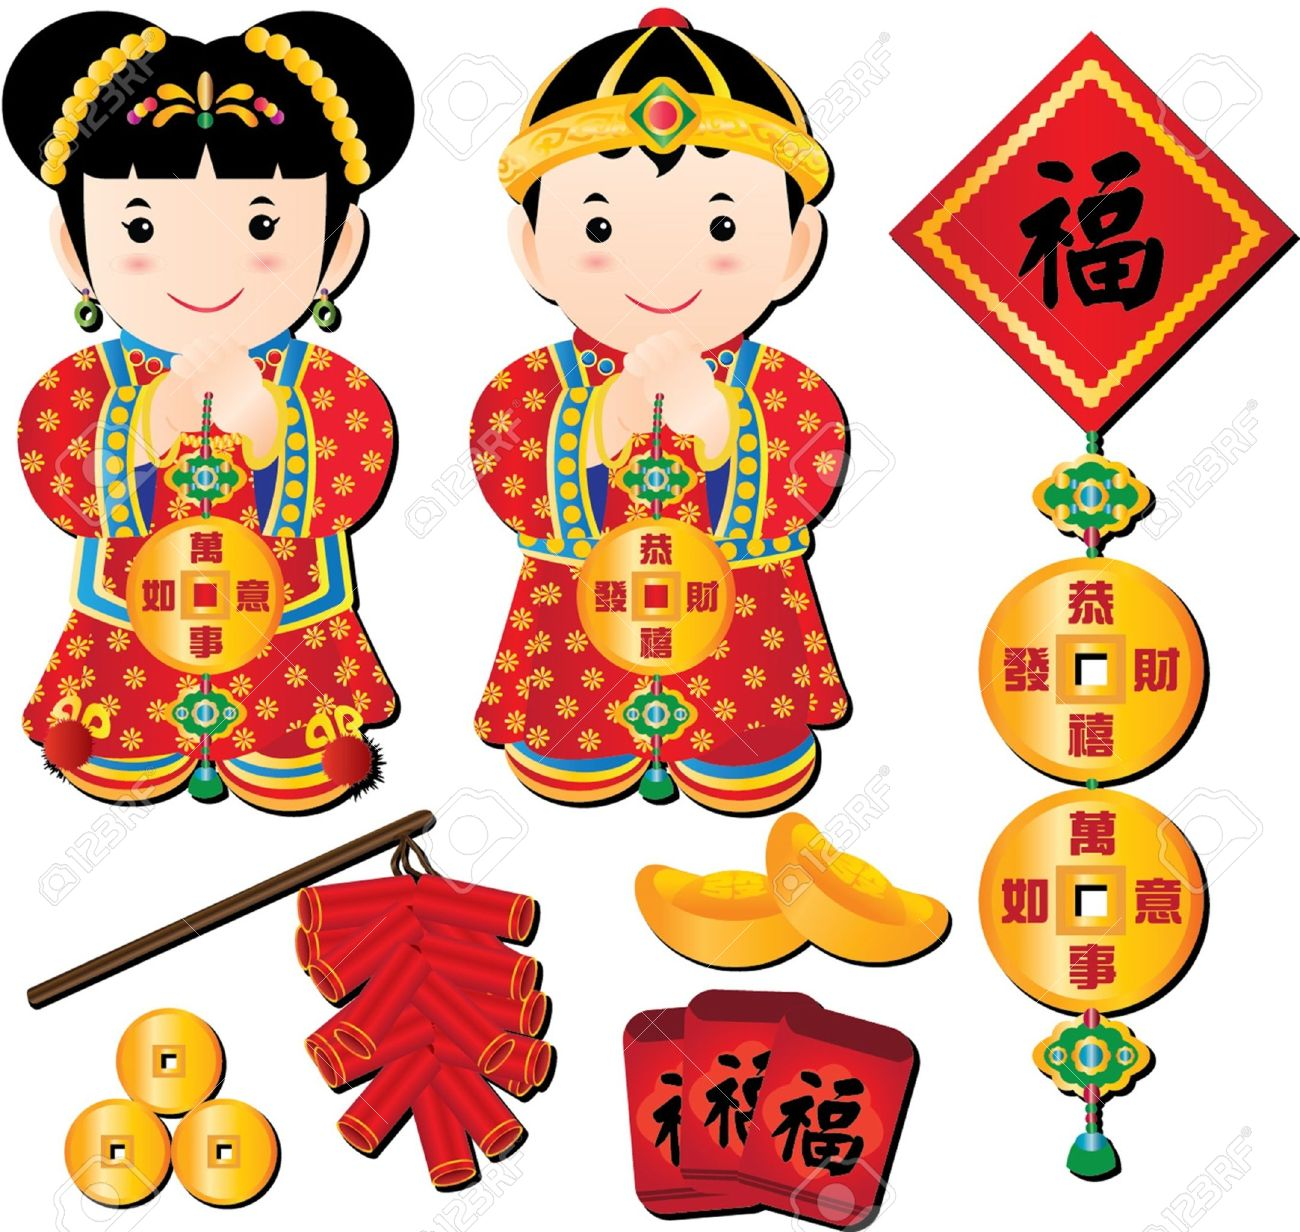 Cartoon Chinese Lunar New Year Vectors - Download Free Vector Art ...